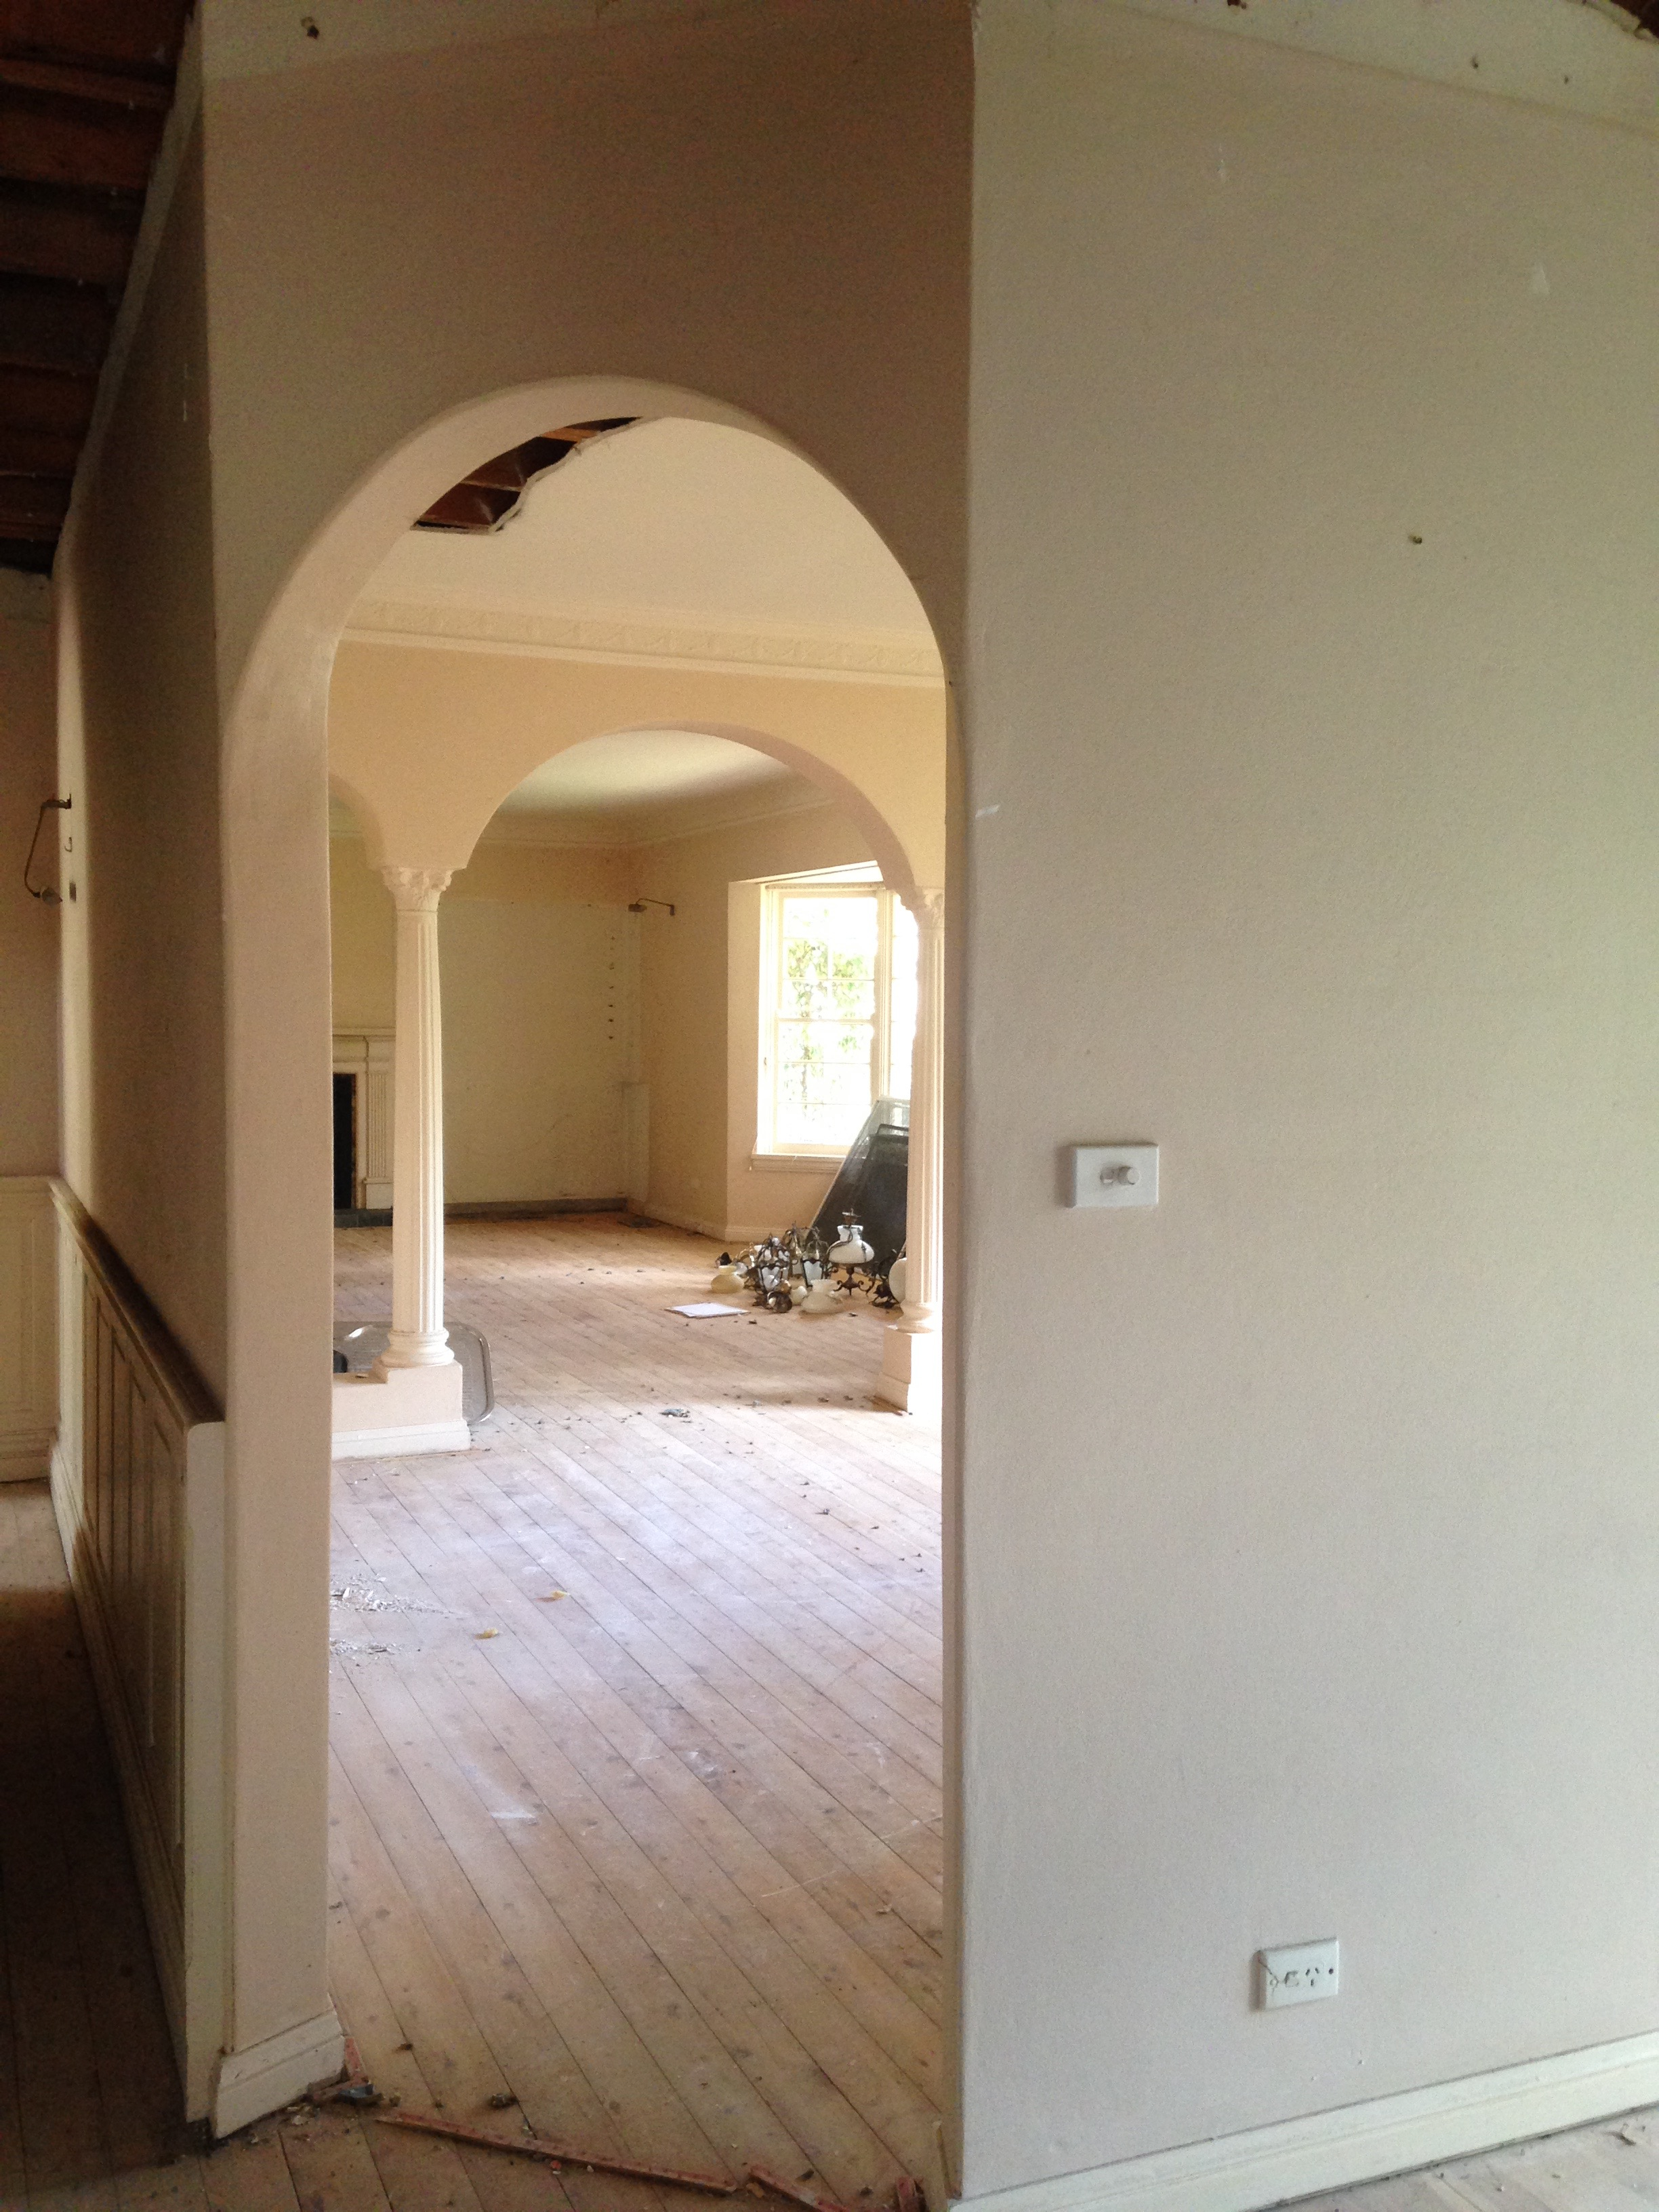 The arches are a consistent element throughout the spaces and will play an important role in our overall design.